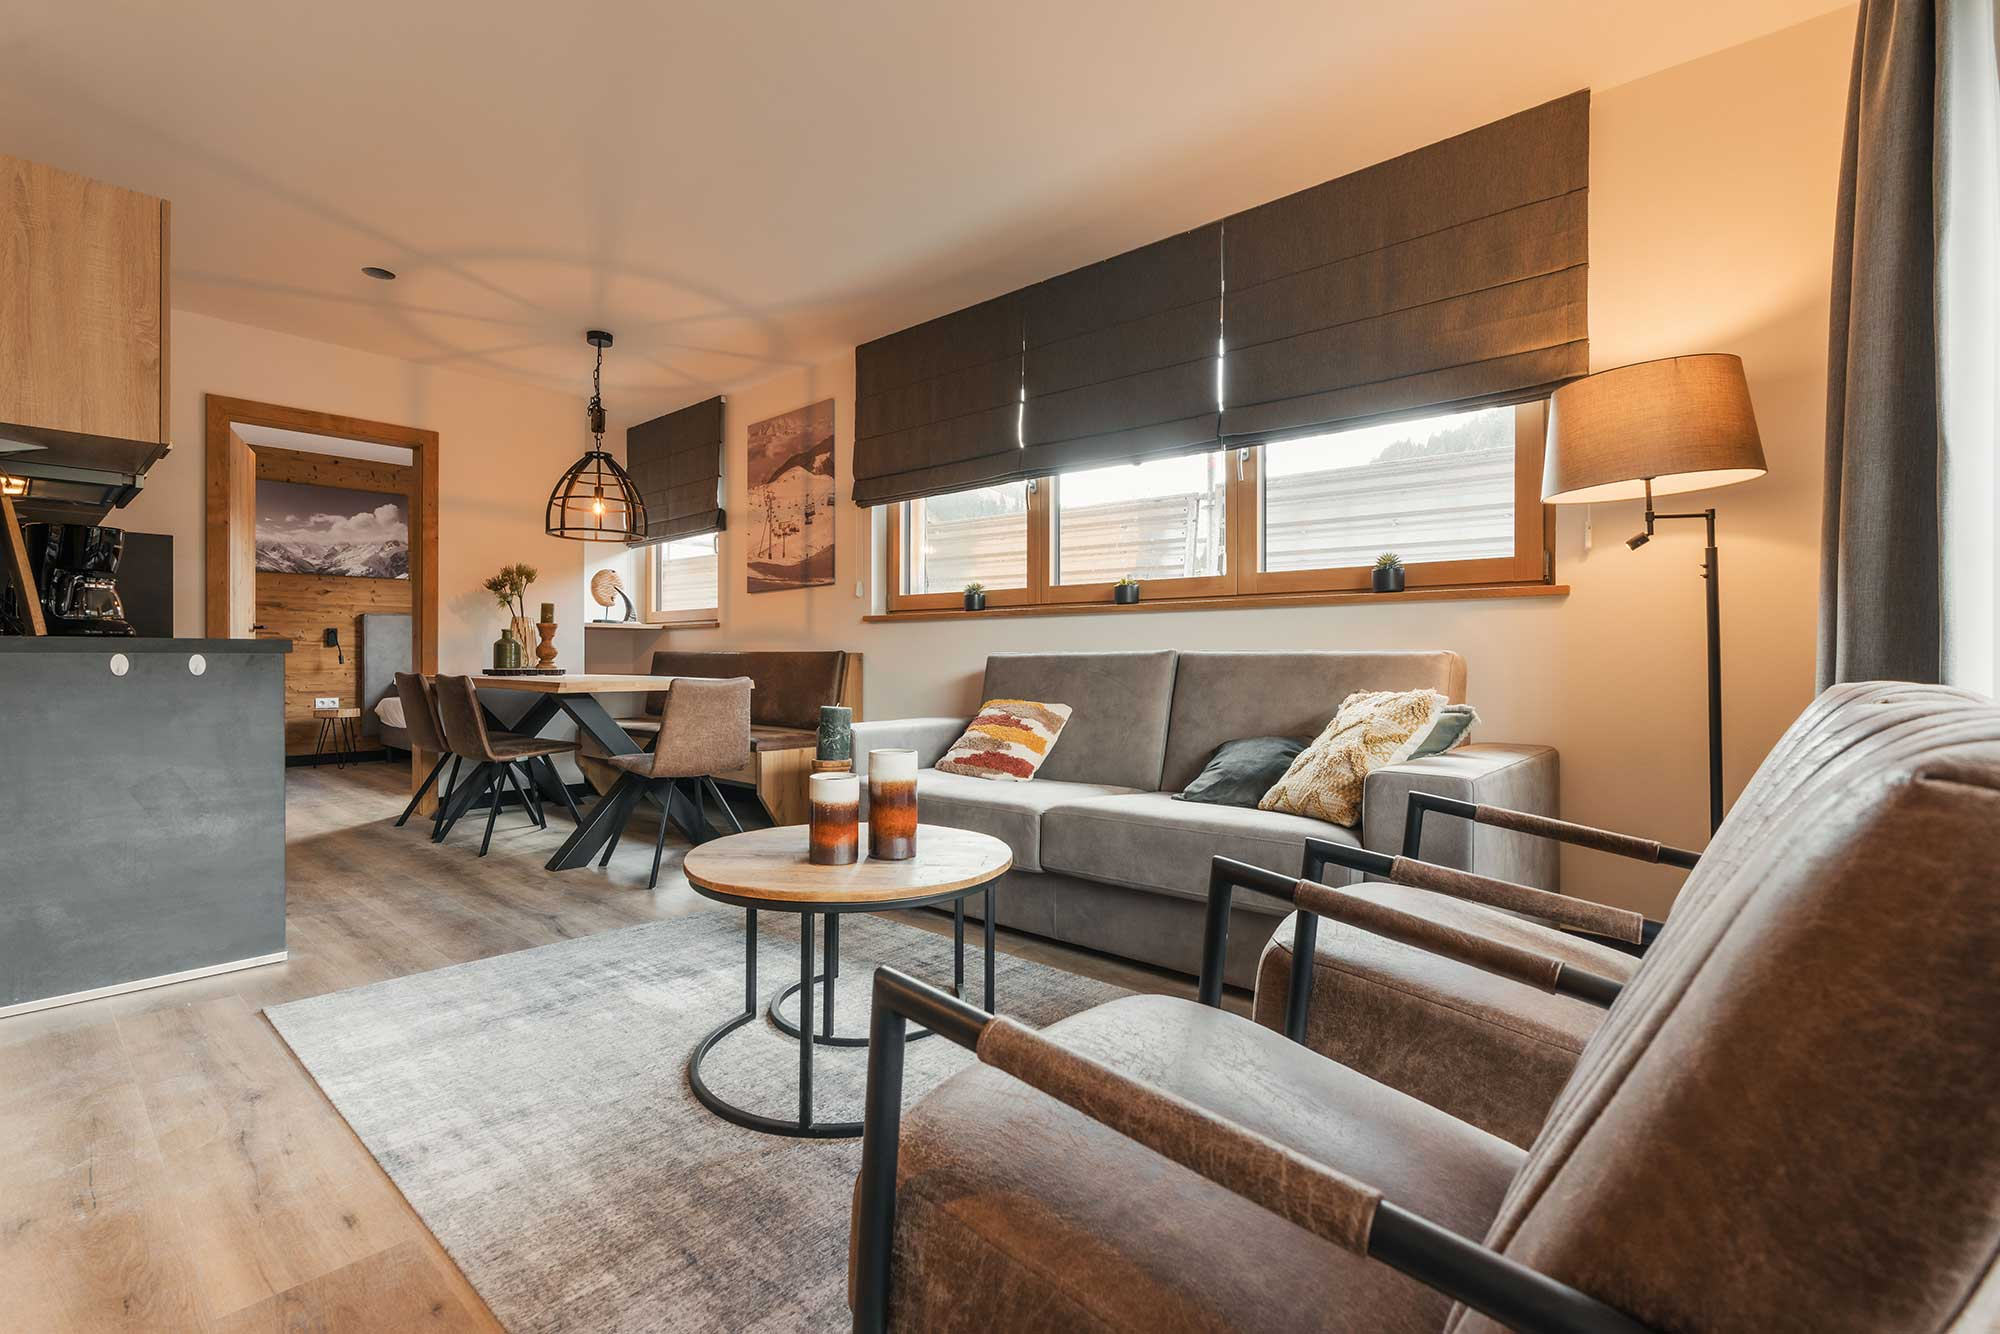 Exclusive and complete furnishing - Alpin Resort Montafon Buy-to-Let